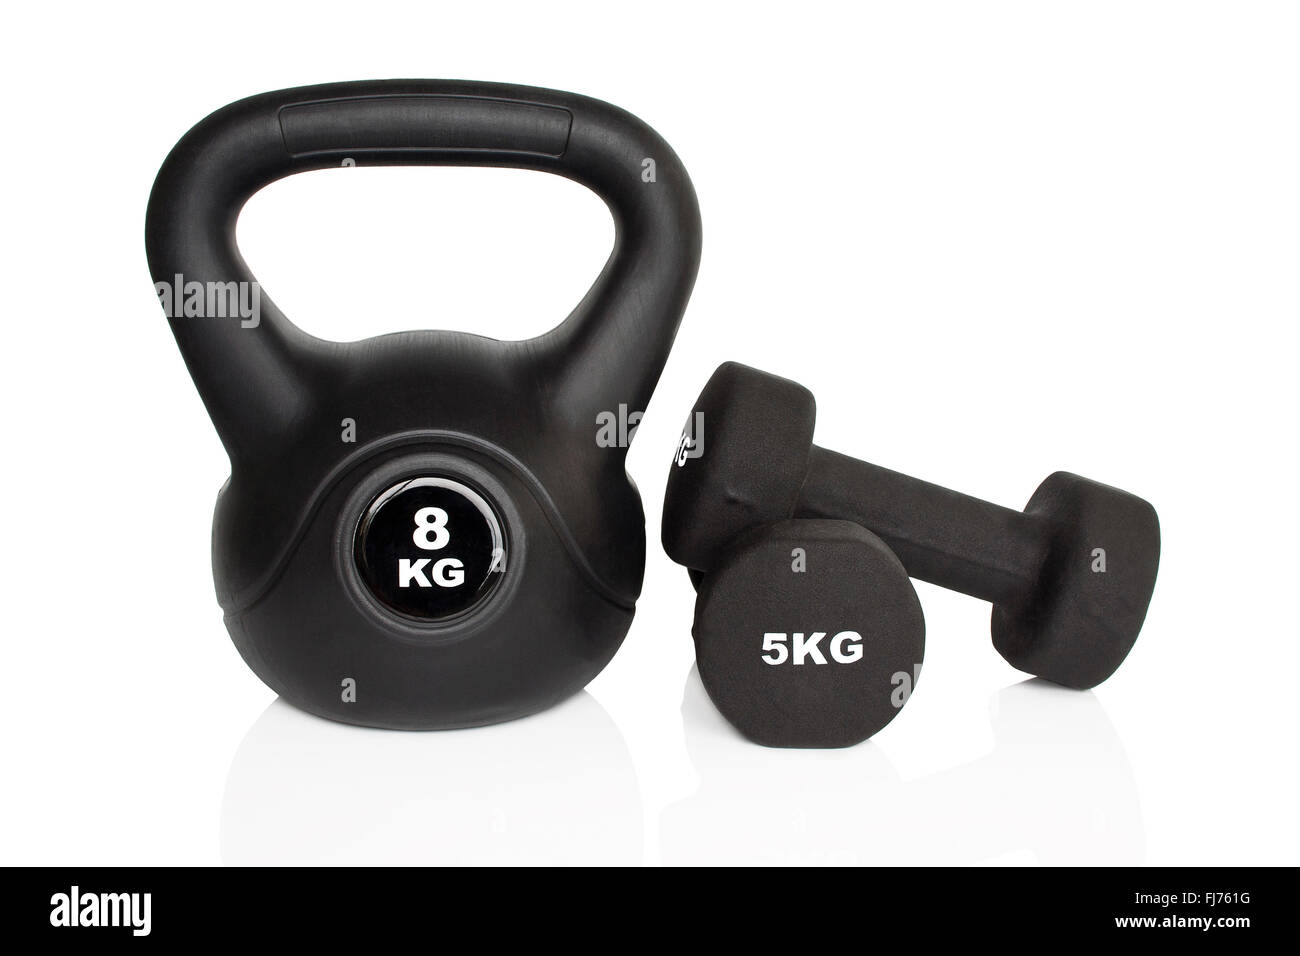 Black dumbbells and kettlebell isolated on white background. Weights for a fitness training. - Stock Image